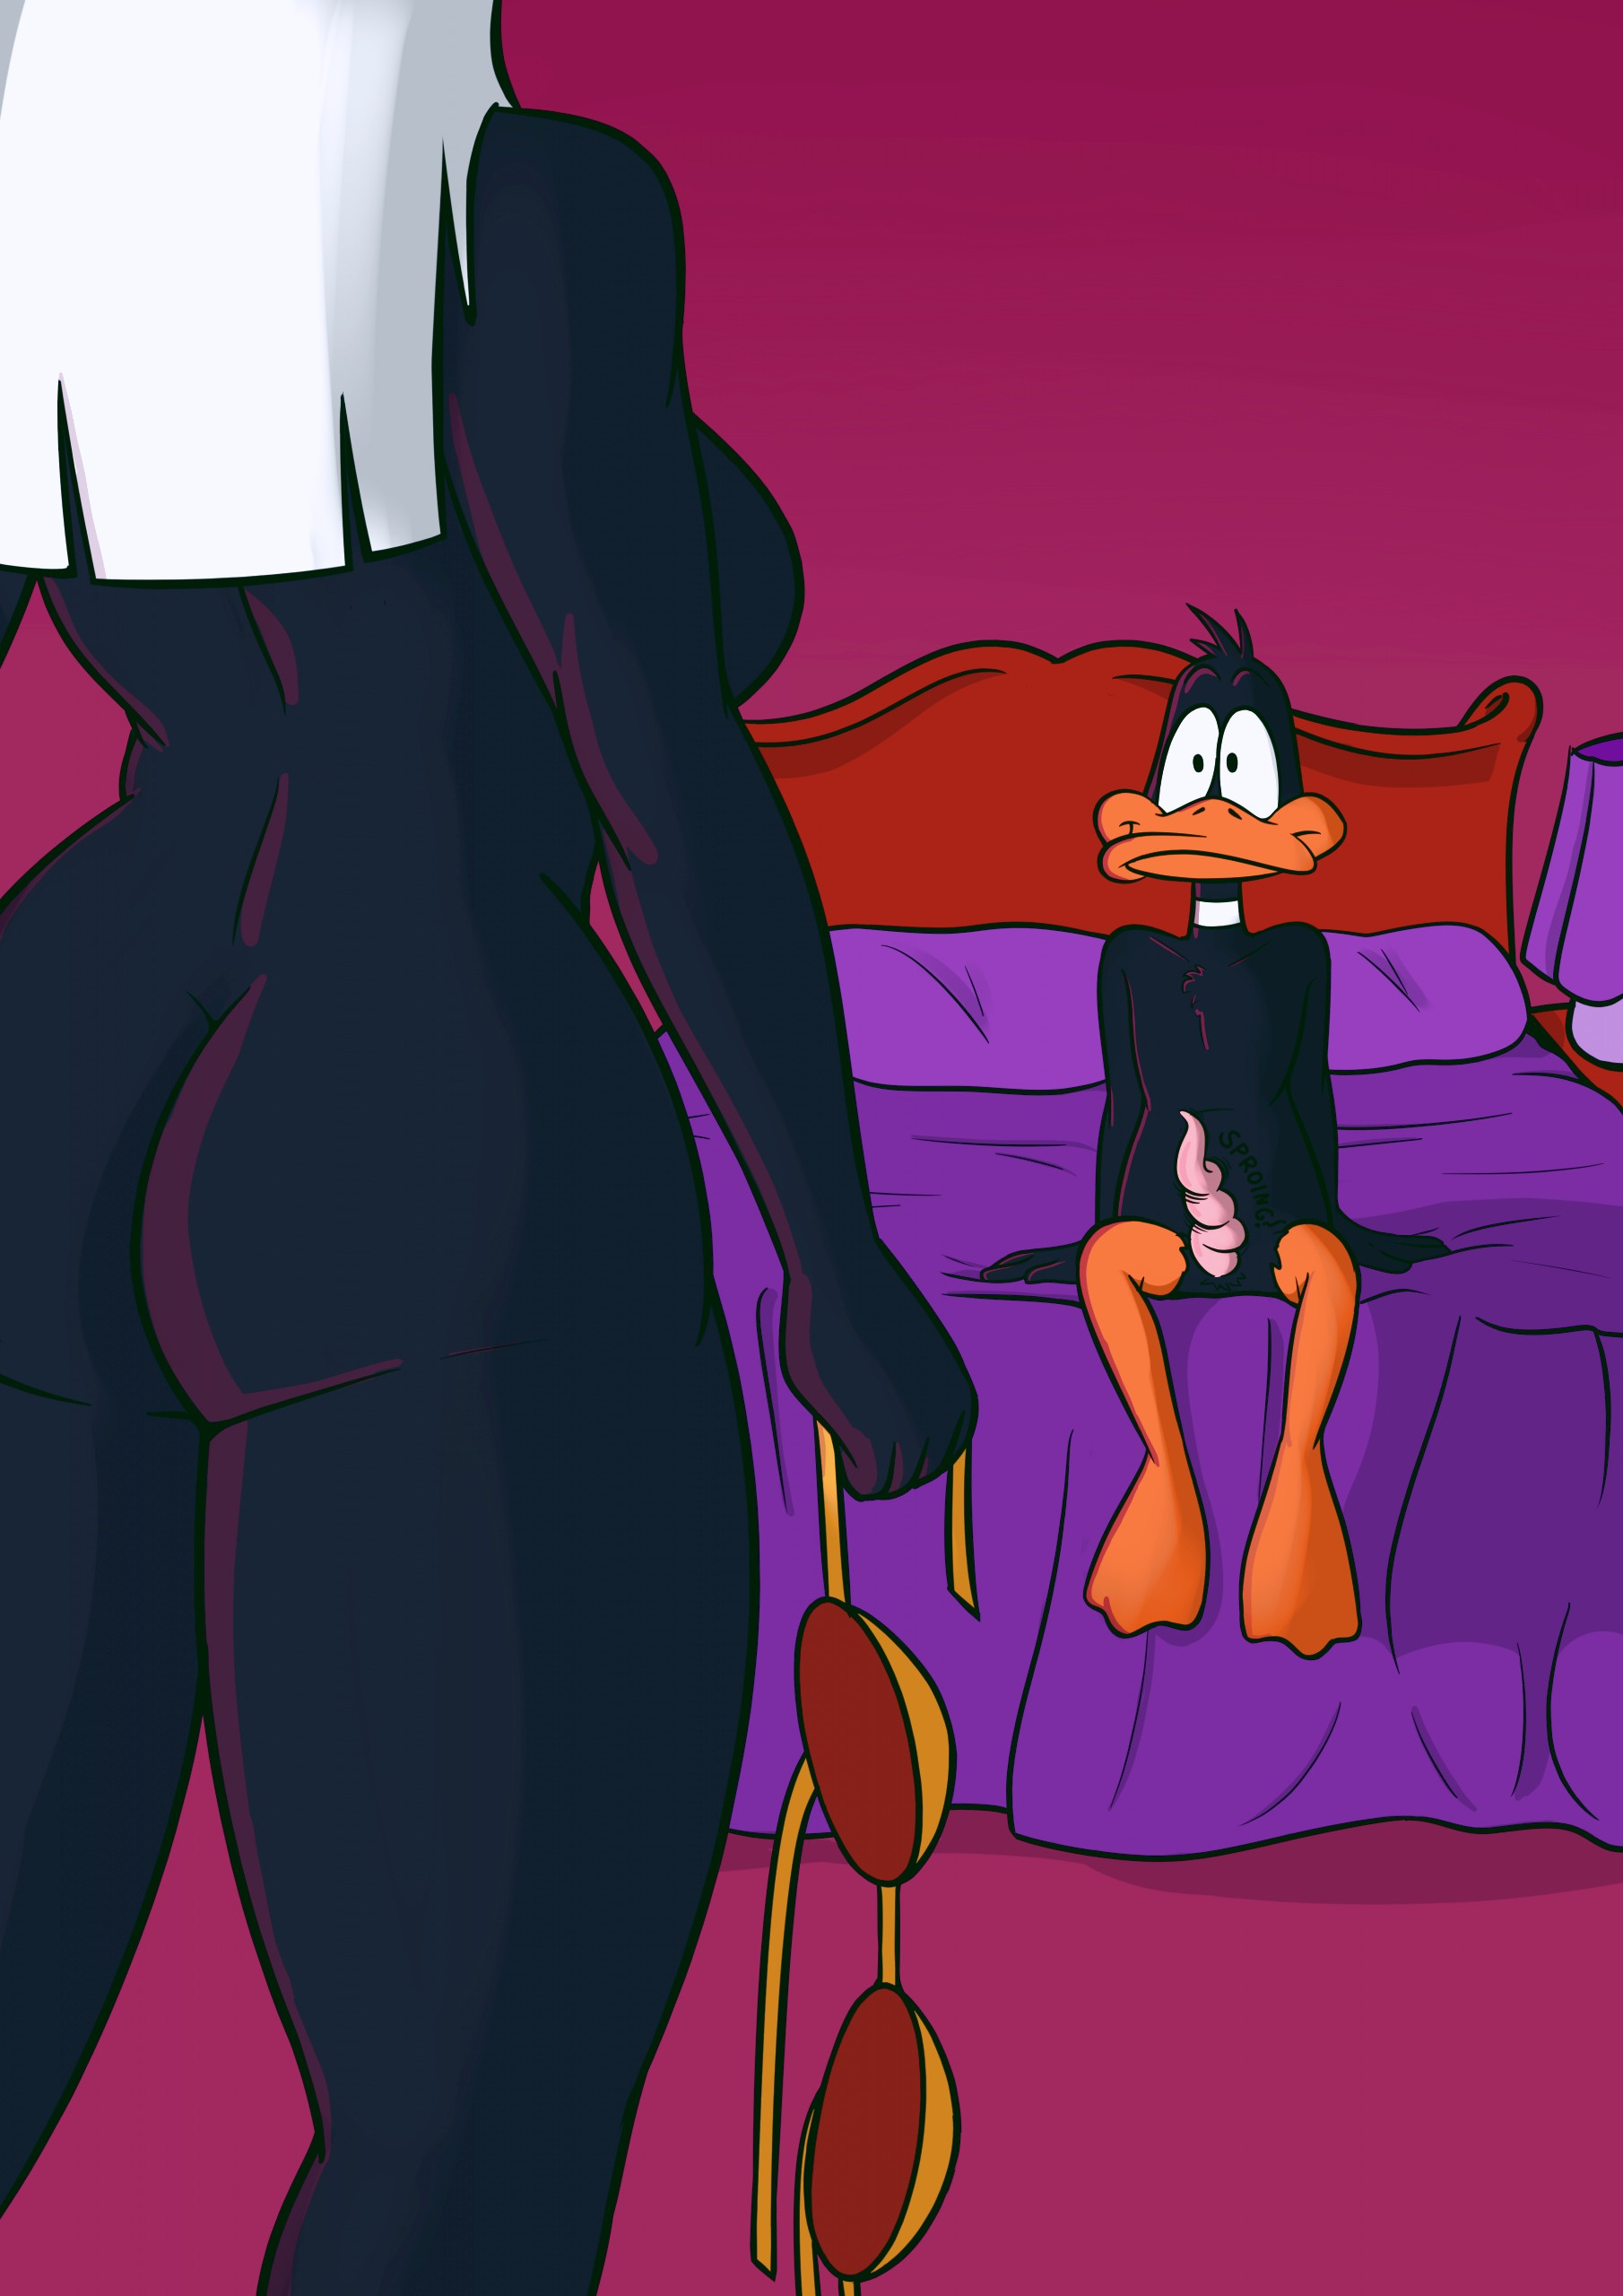 Duck Dodgers porn comic page 01 on category Looney Tunes